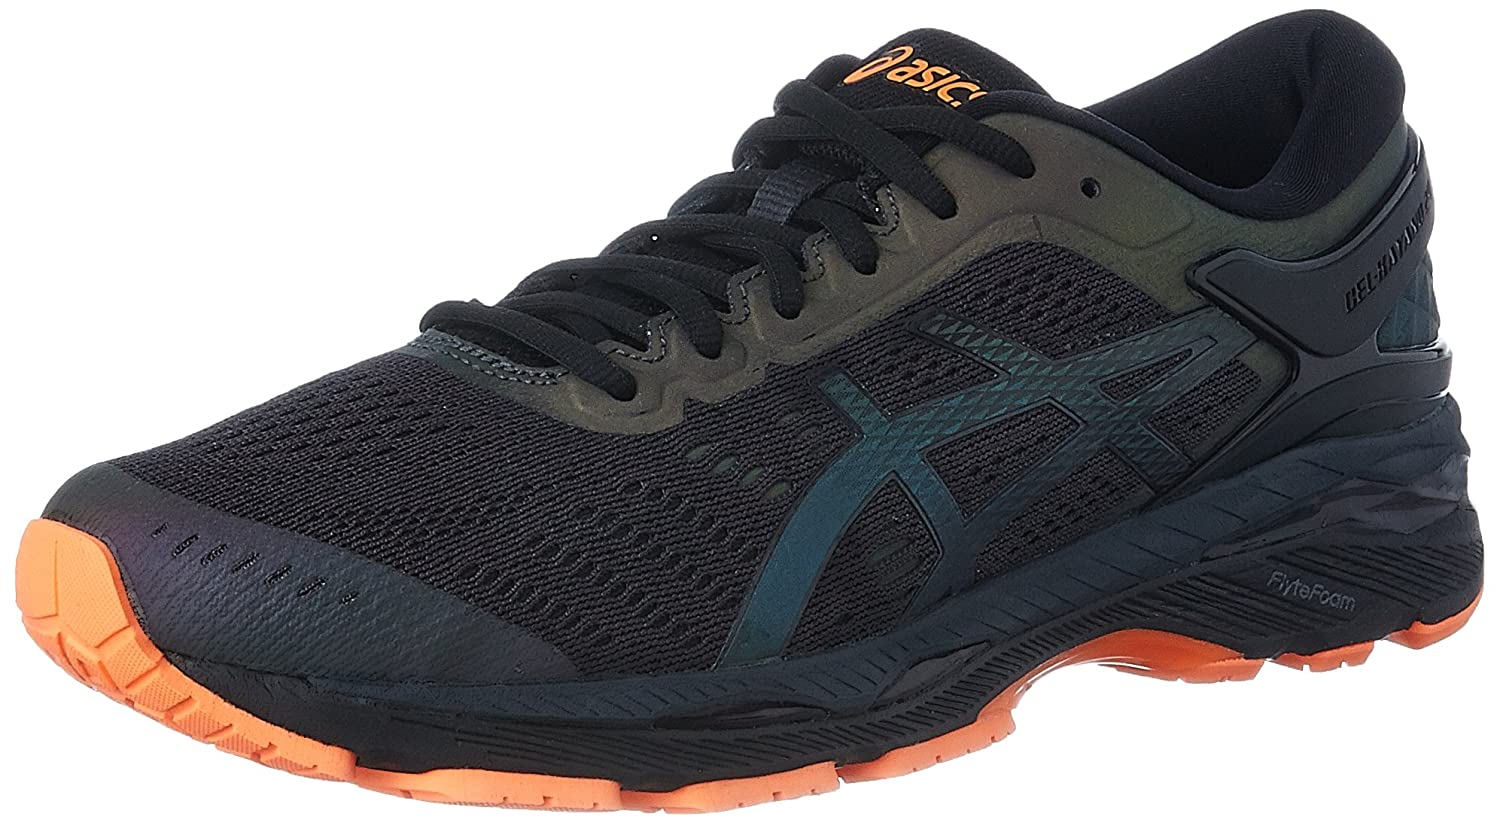 ASICS Men's Gel-Kayano 24 Lite-Show Running Shoes